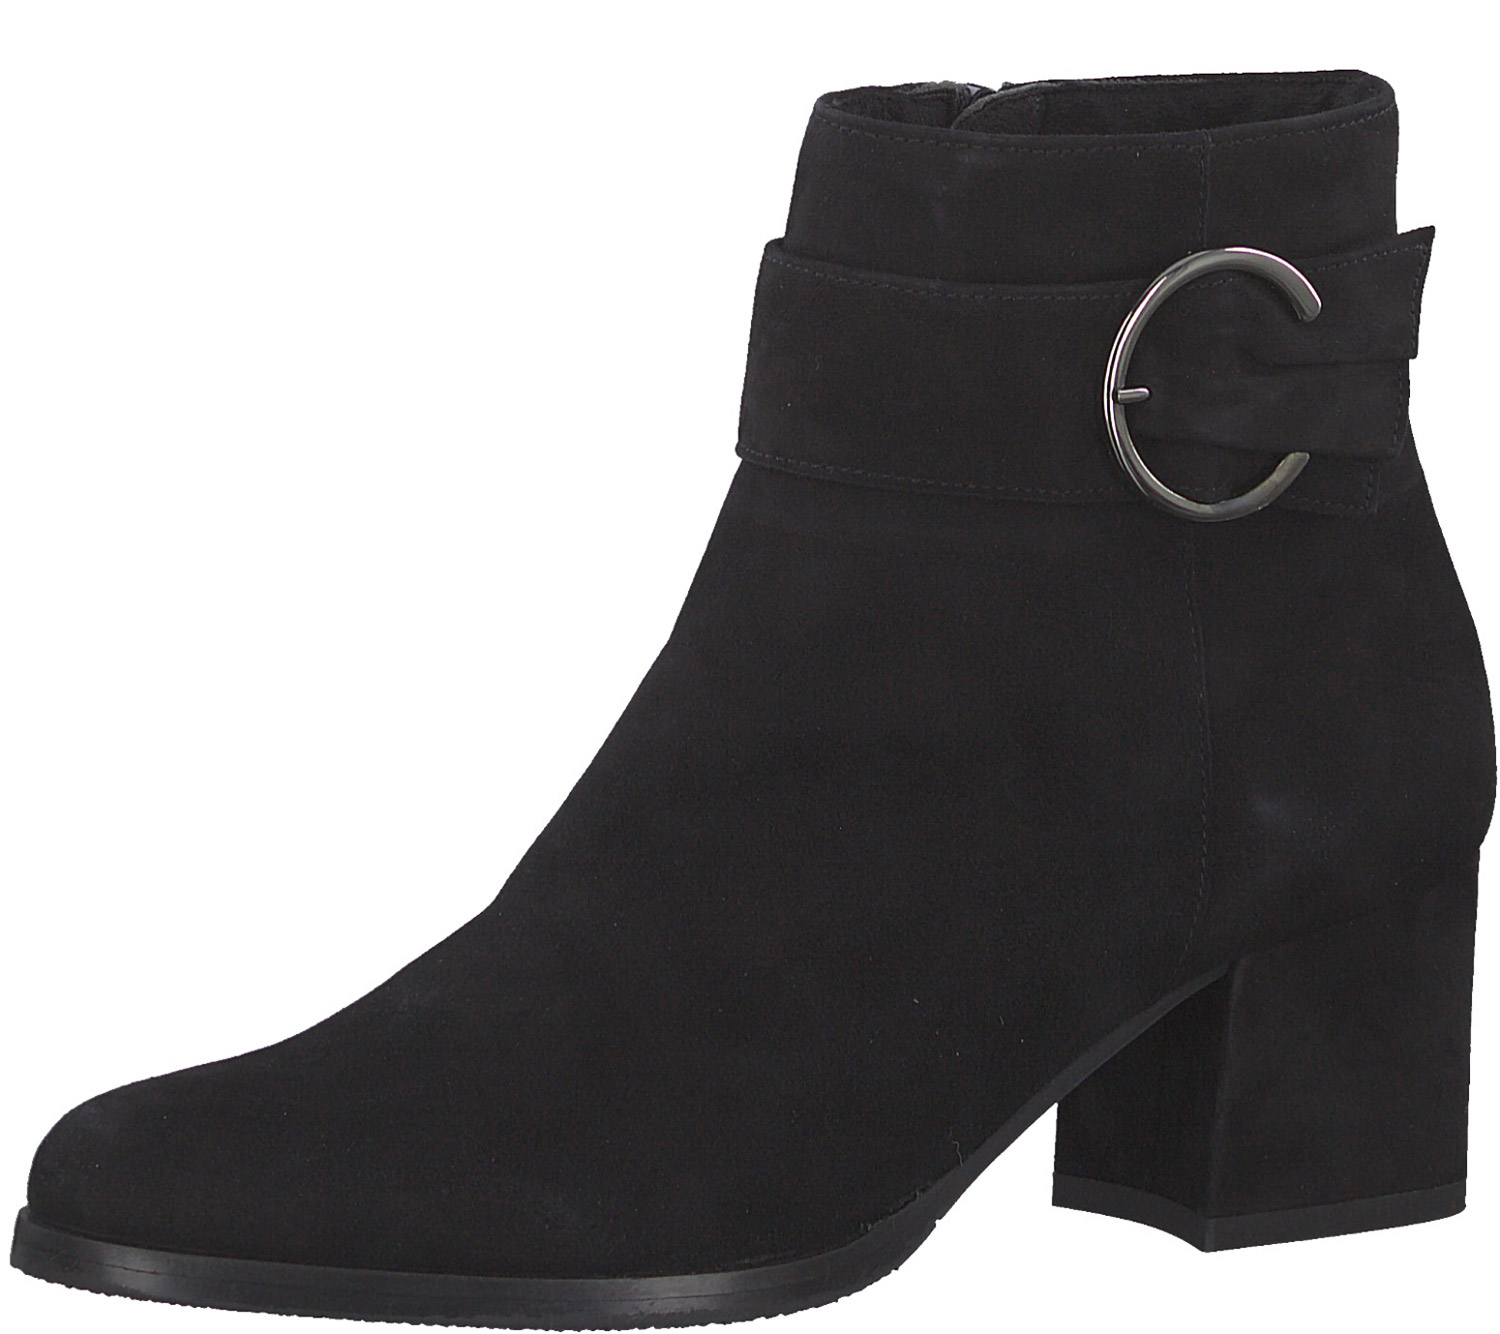 Tamaris Women's Boots Ankle Boots Winter 25379-21 001 Black New